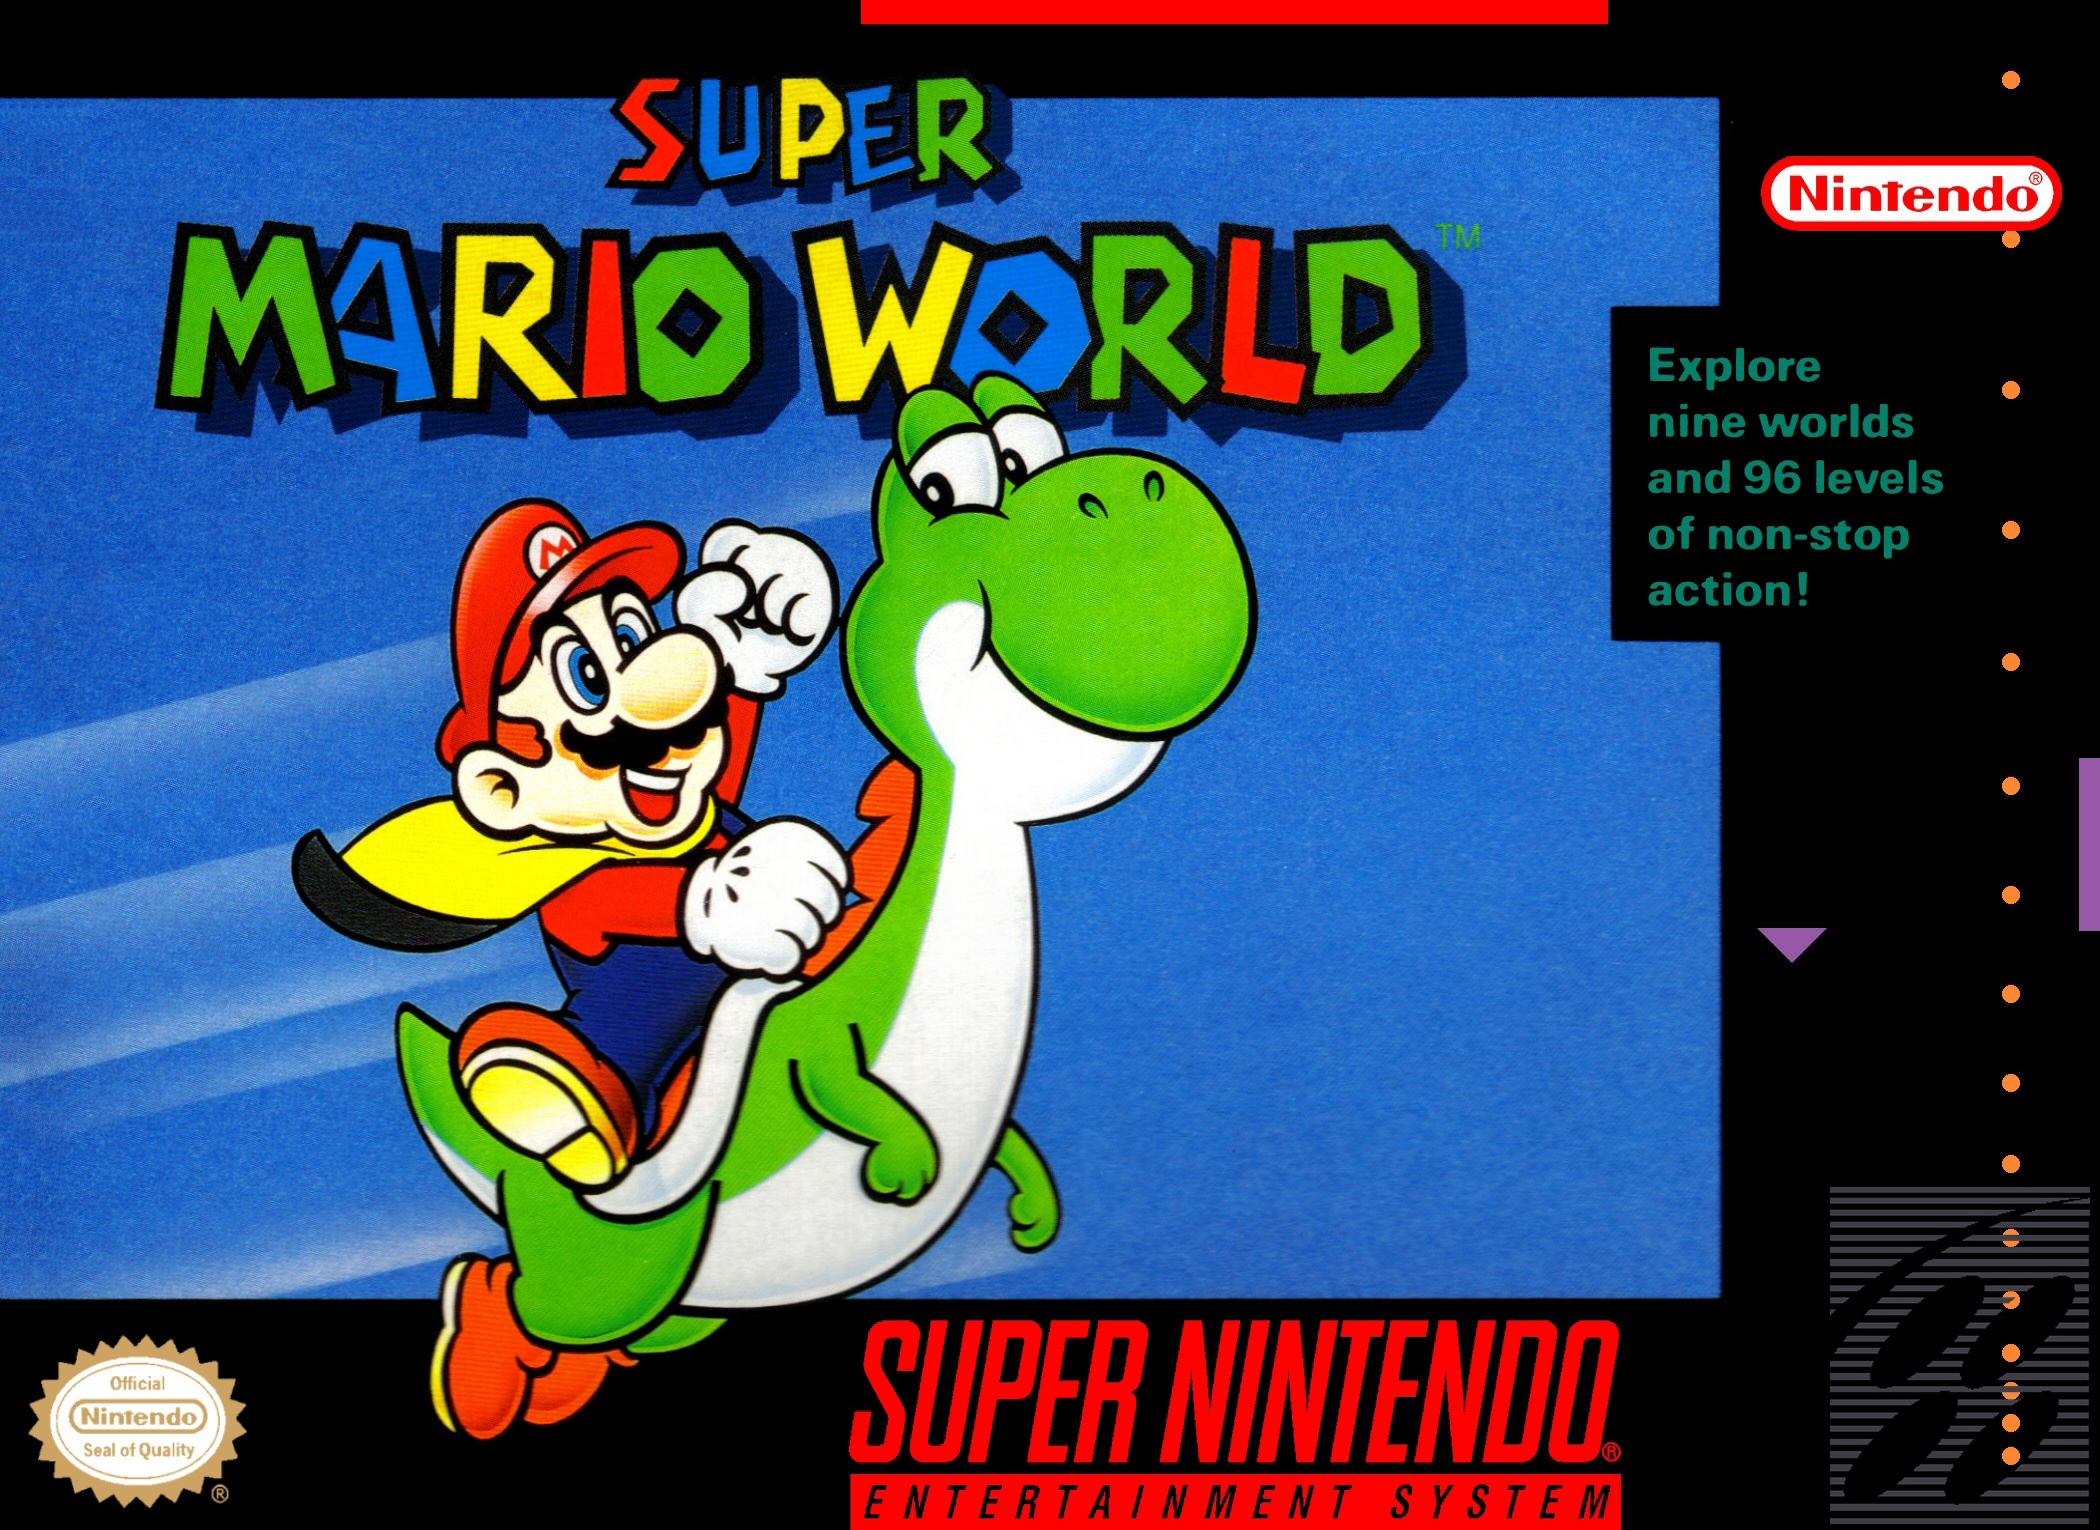 Super Mario World Nintendo Fandom